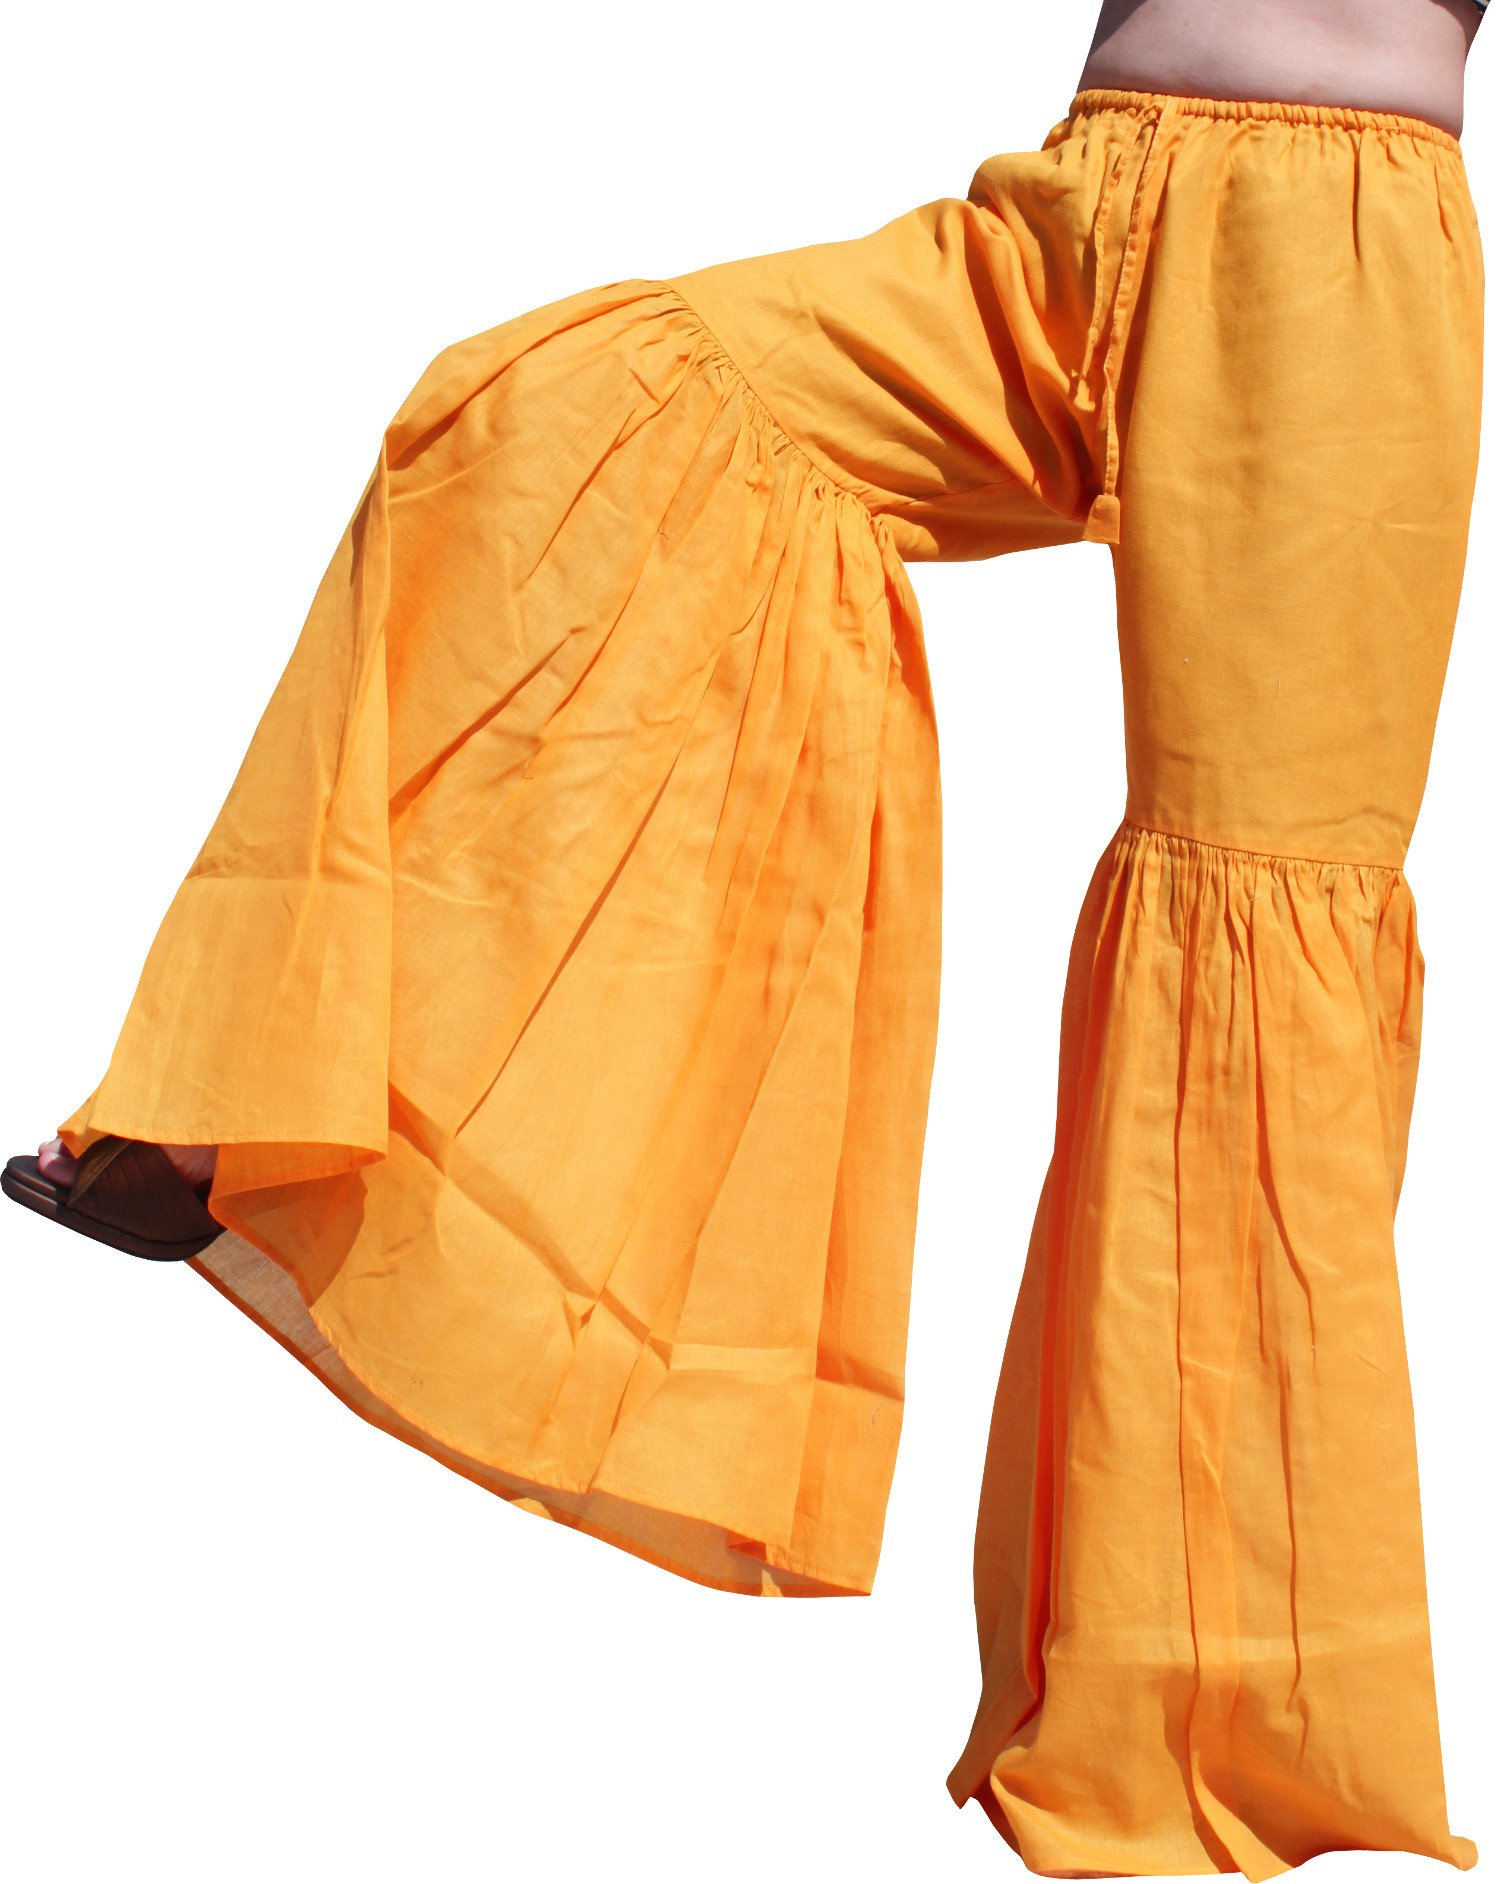 Raan Pah Muang RaanPahMuang Brand Wide Lower Leg Flared Light Cotton Stepped Pants Baggy Cut, Medium, Orange by Raan Pah Muang